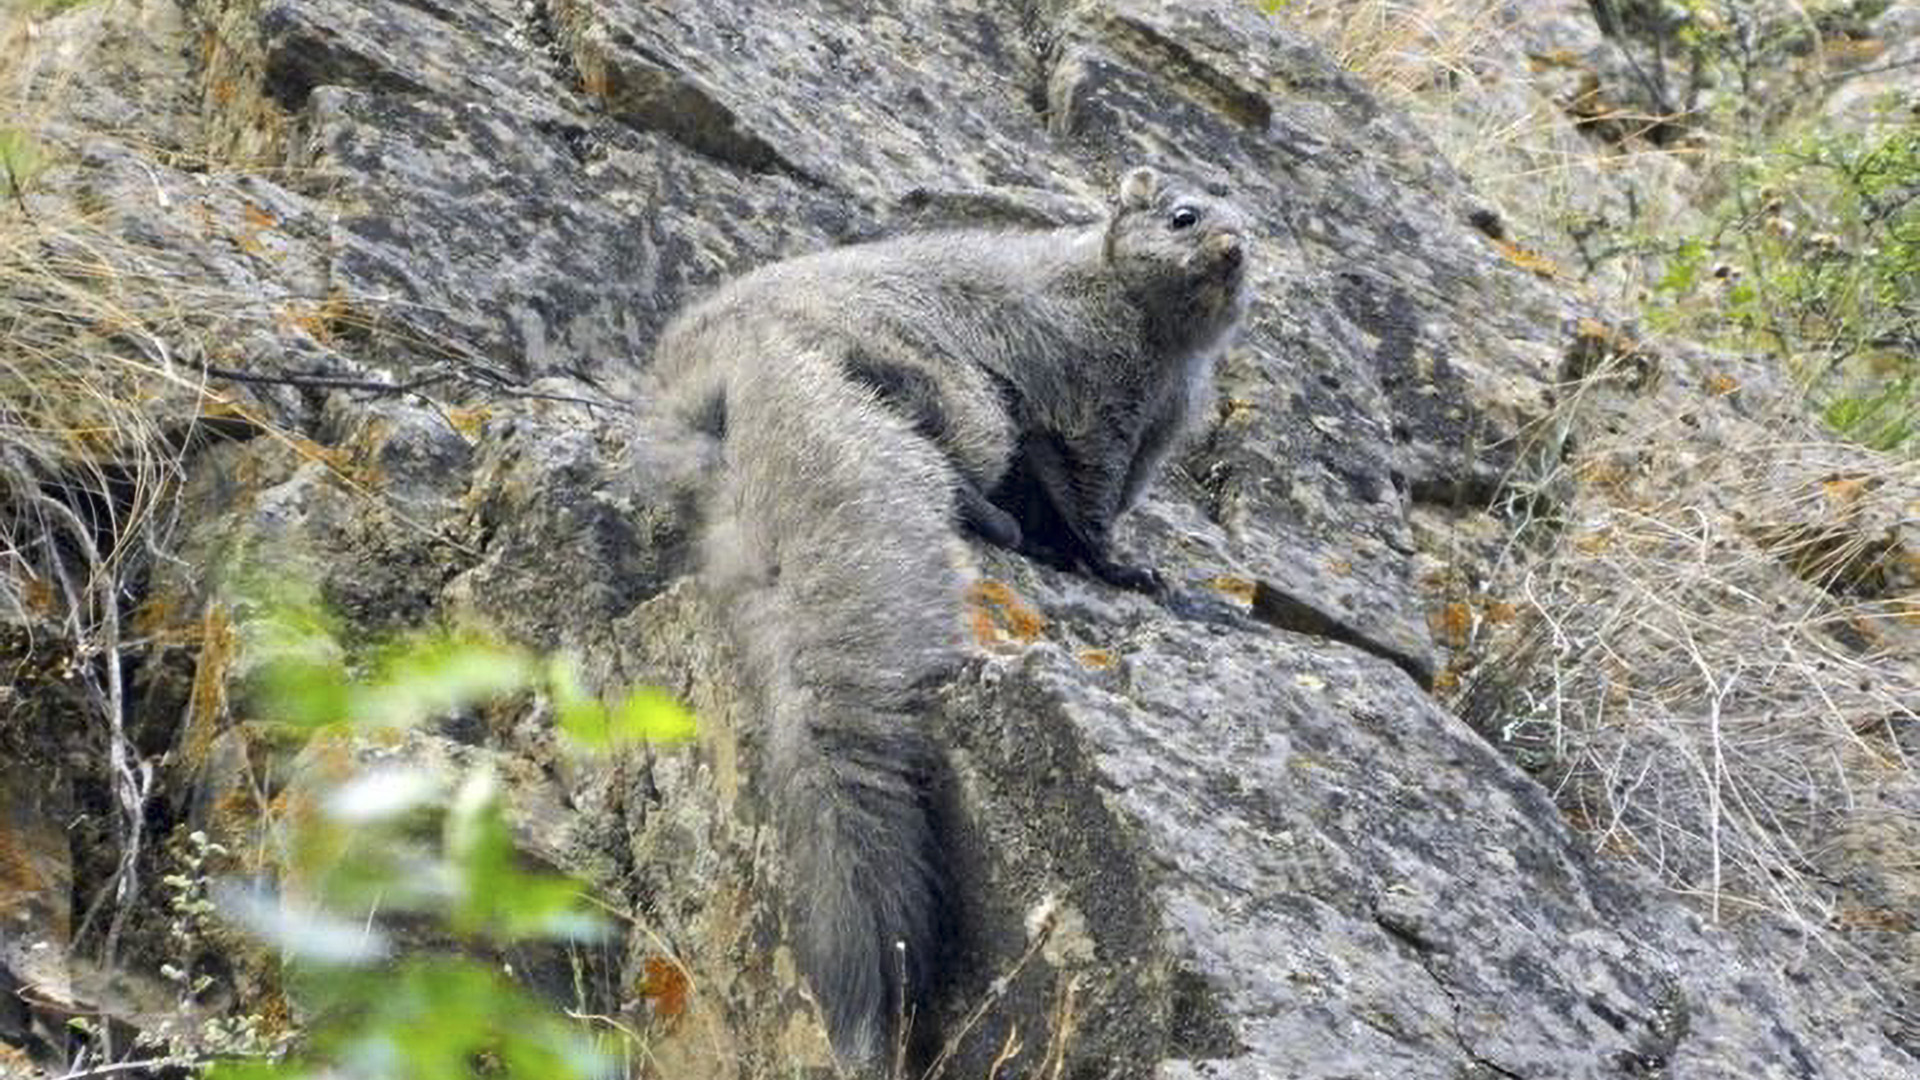 Two New Species Of Woolly Flying Squirrels Discovered In The Himalayas